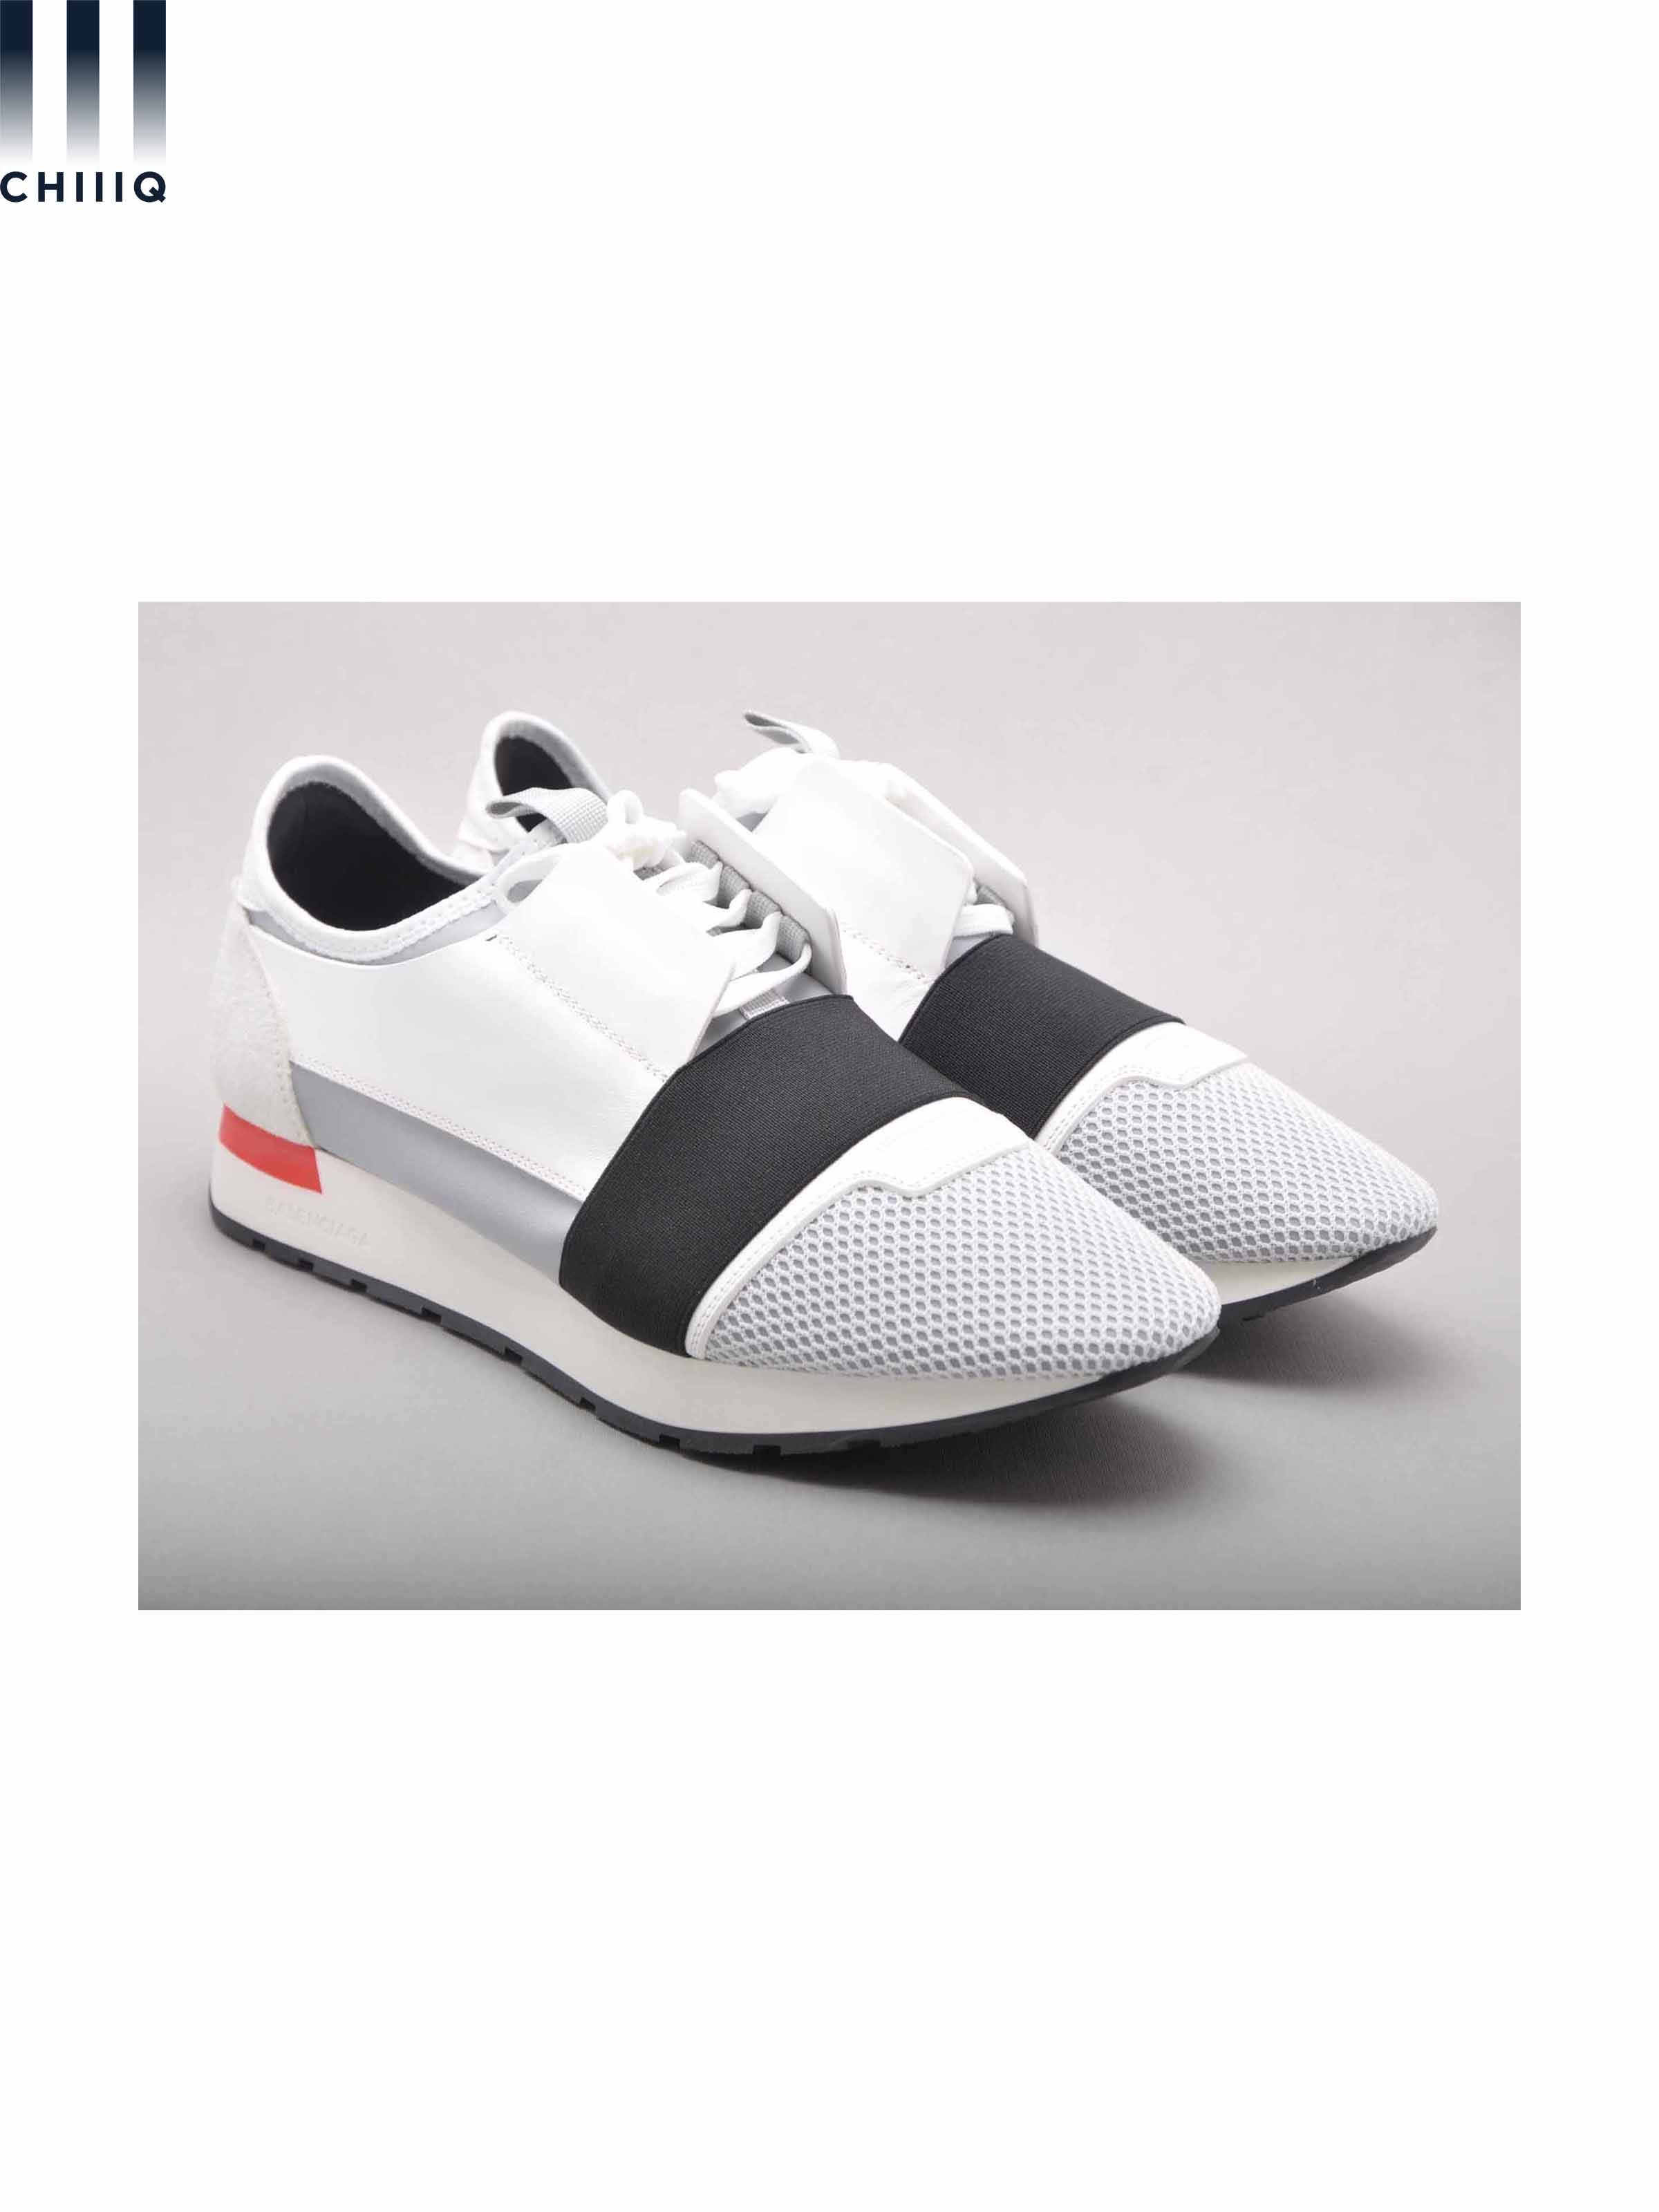 26c35f7cc34b Balenciaga New White Multimaterial Race Runners Sneakers Size 11 ...